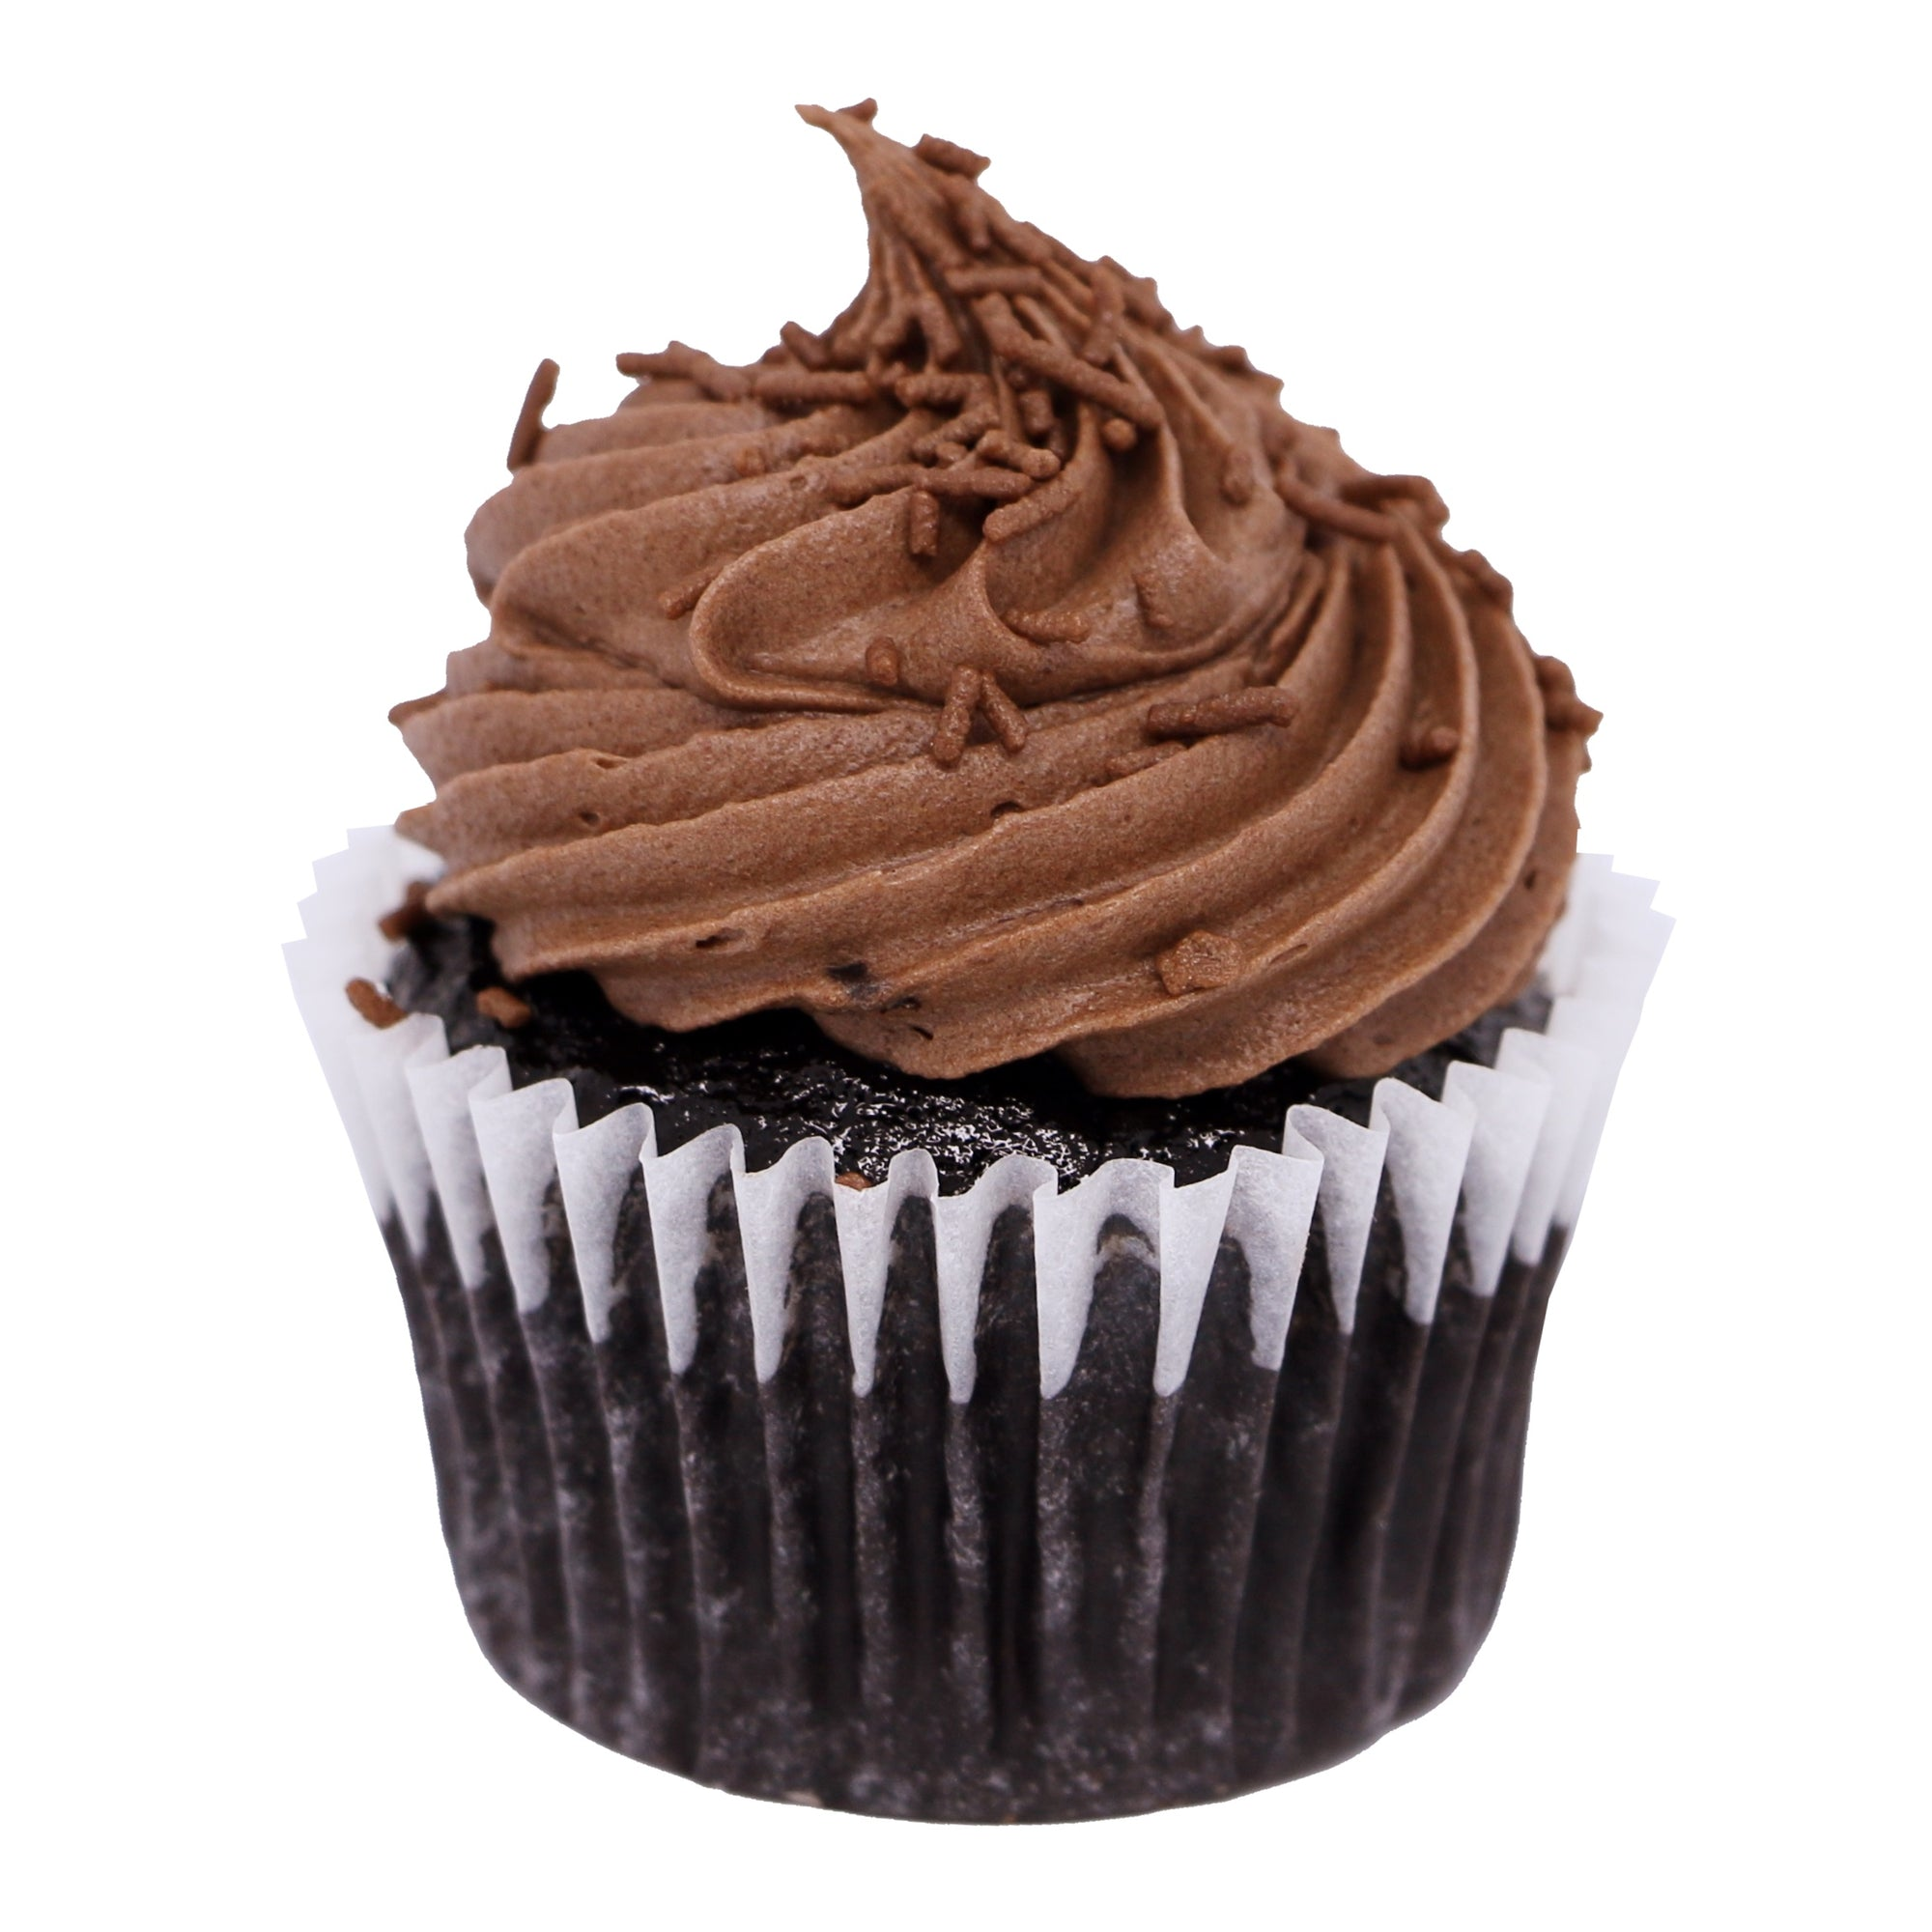 Mini Cupcake - Chocolate - Treats2eat - Wedding & Birthday Party Dessert Catering Near Me